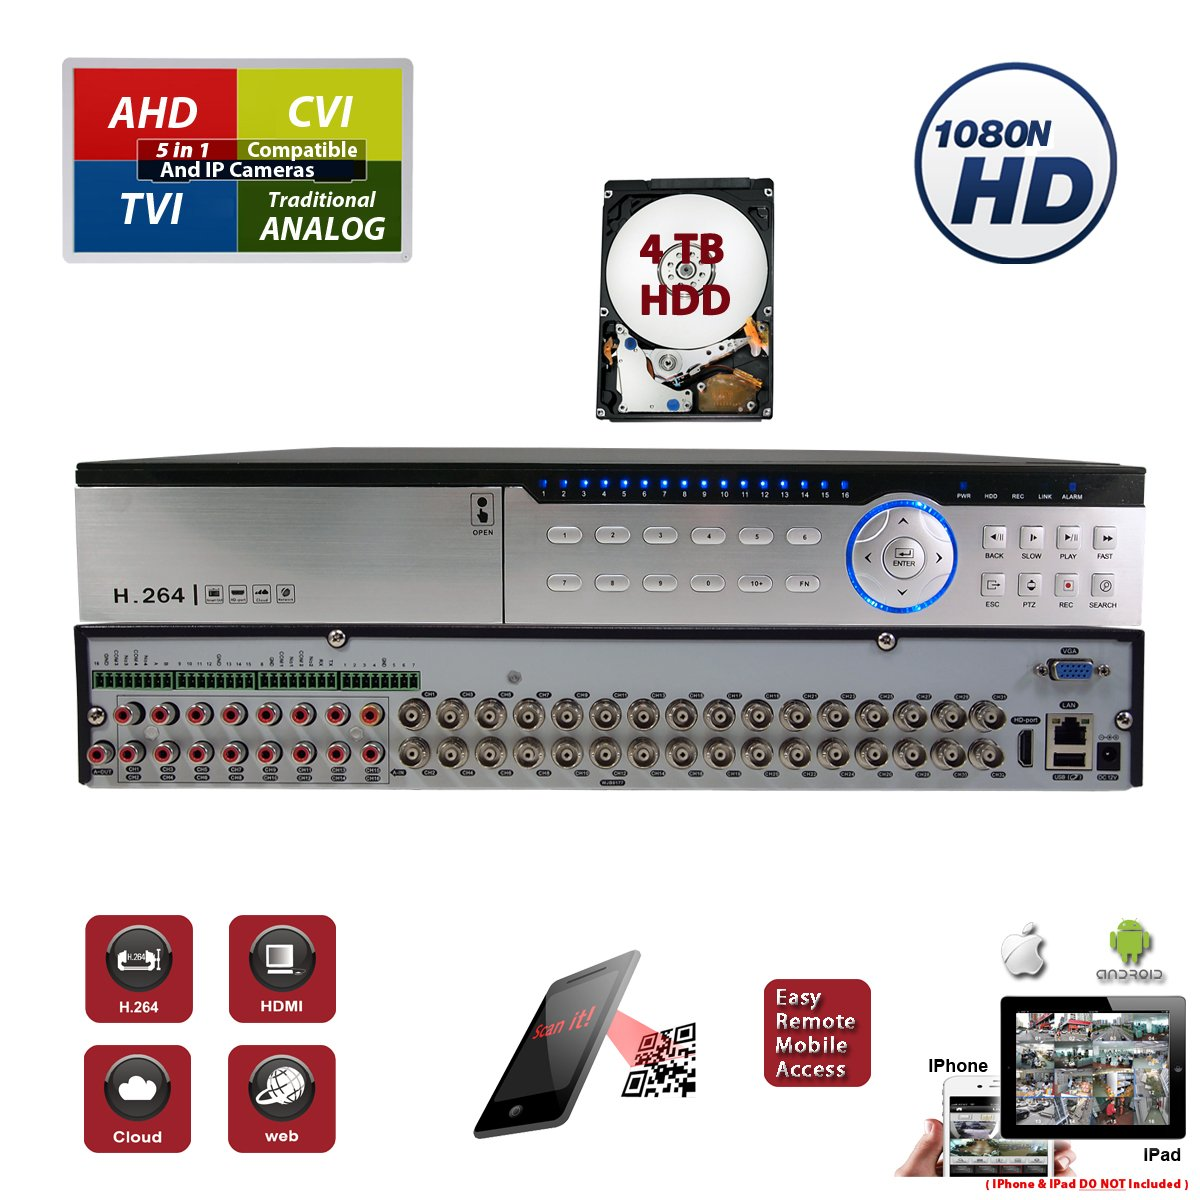 32 Channel H.264 HD 1080 CCTV Security Home Office Professional DVR Recorder with 4TB HDD Included by Evertech (Image #1)